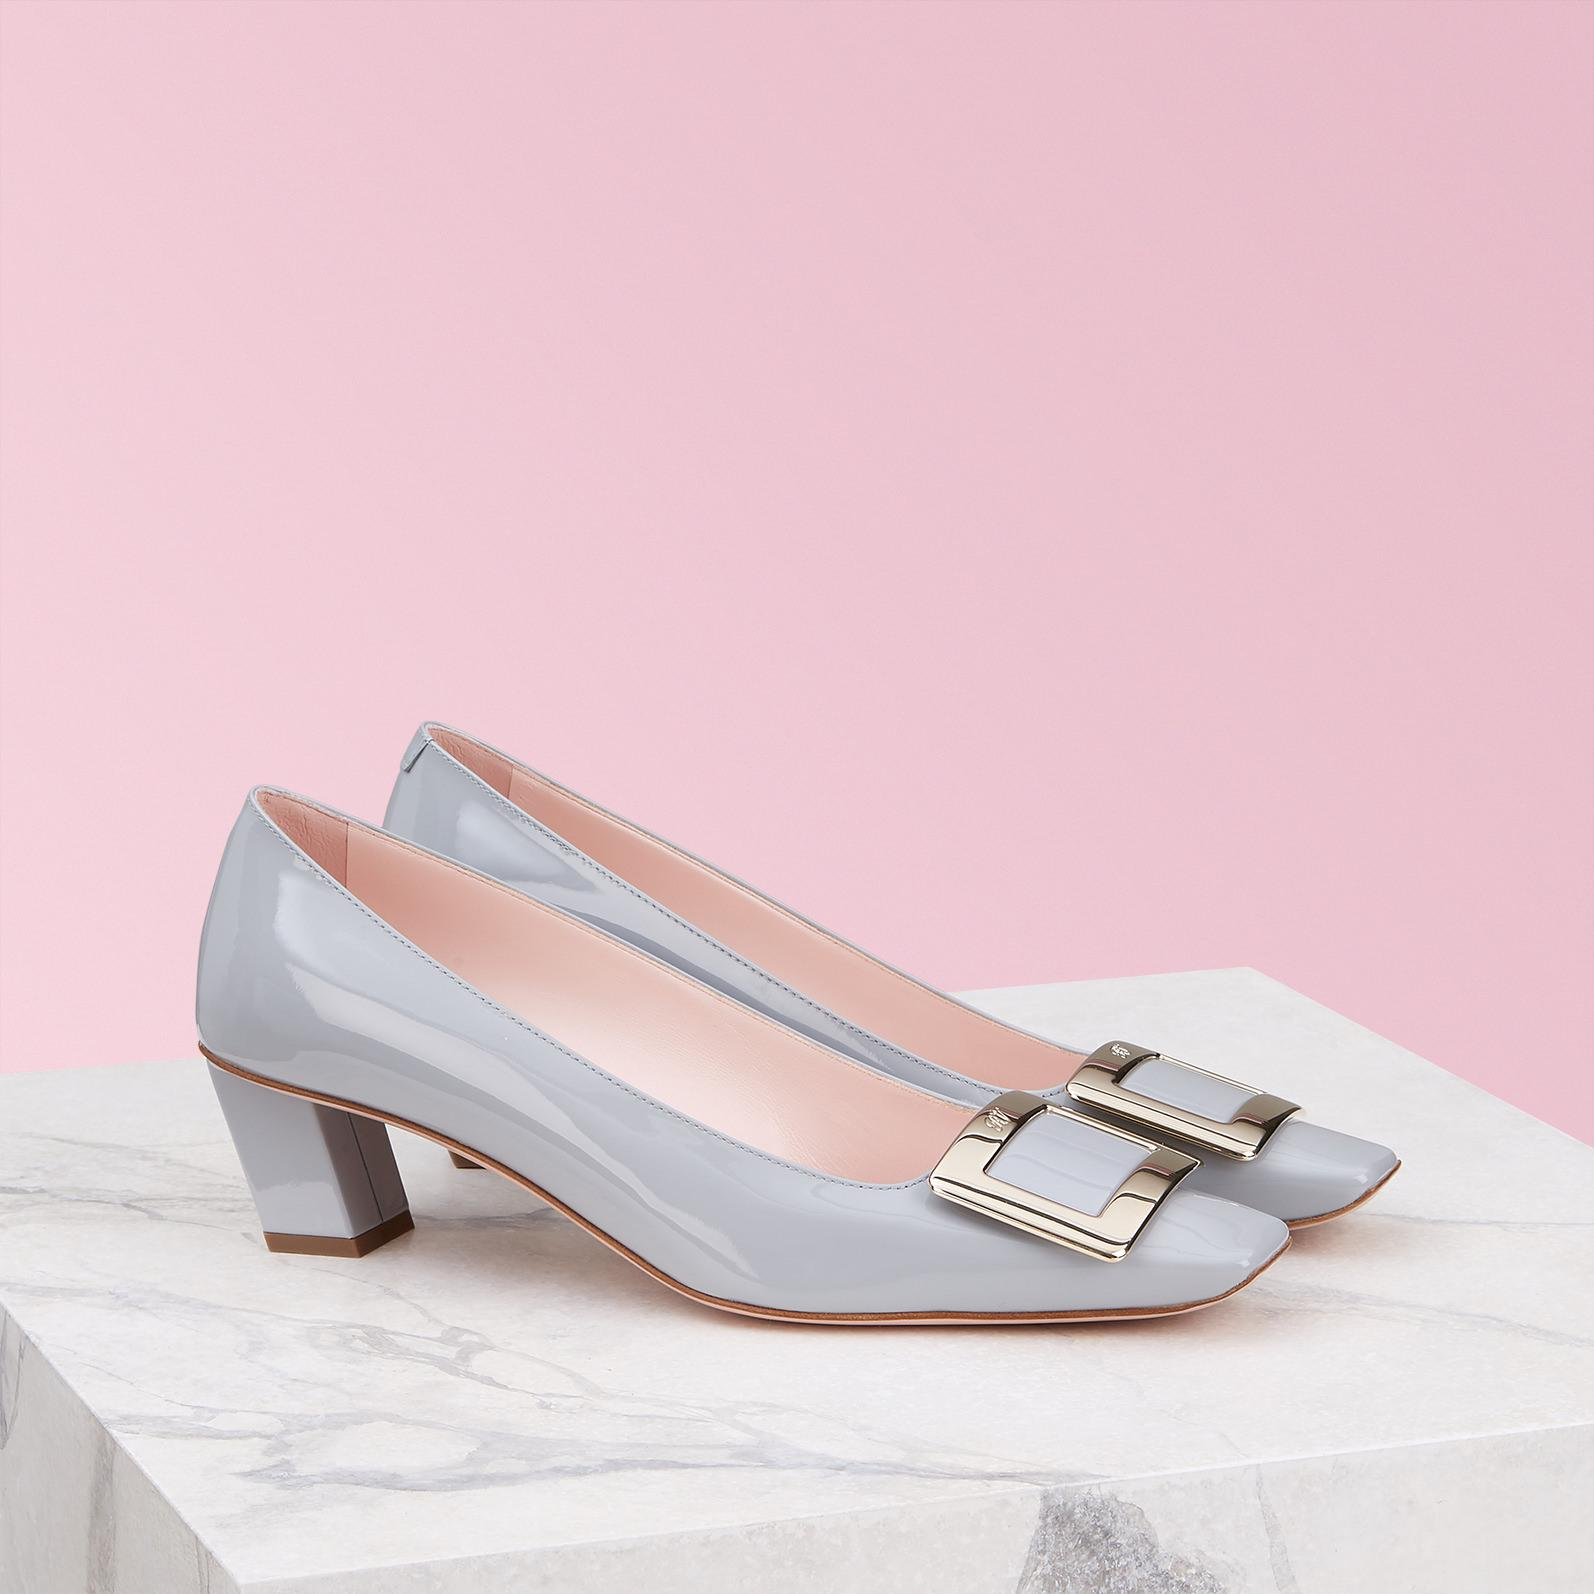 aabaa7aa32c Roger Vivier - Blue Belle Vivier Metal Buckle Pumps - Lyst. View fullscreen